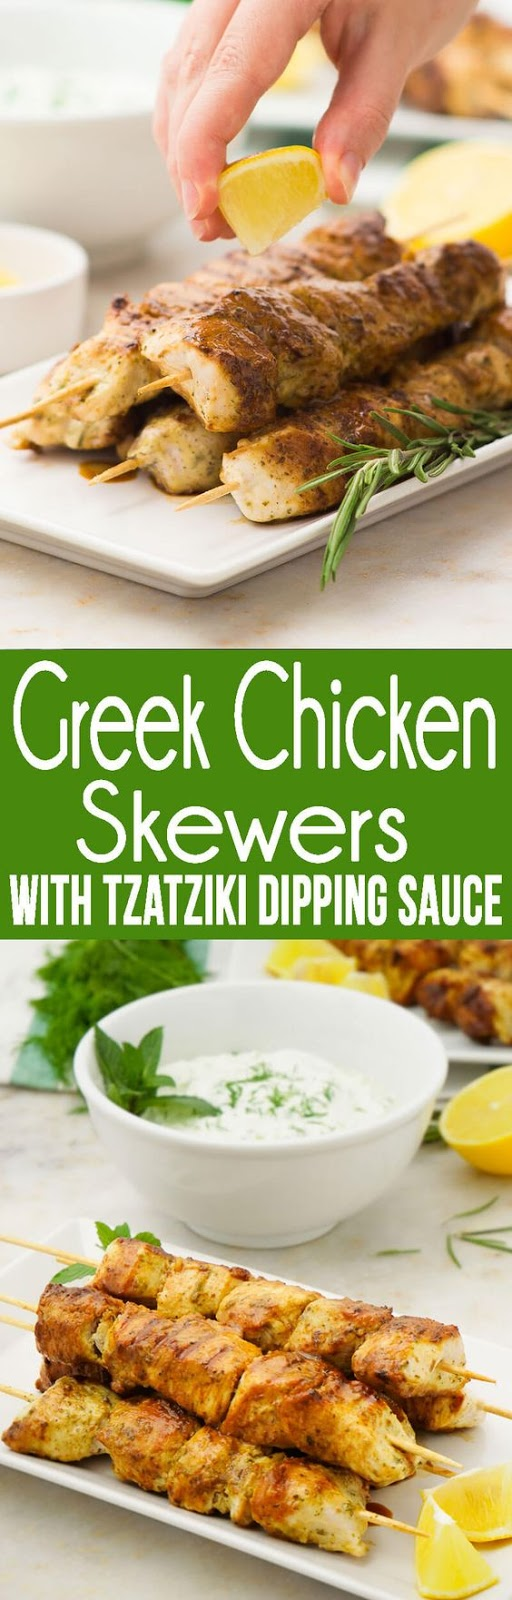 Greek Chicken Skewers With Tzatziki Dipping Sauce